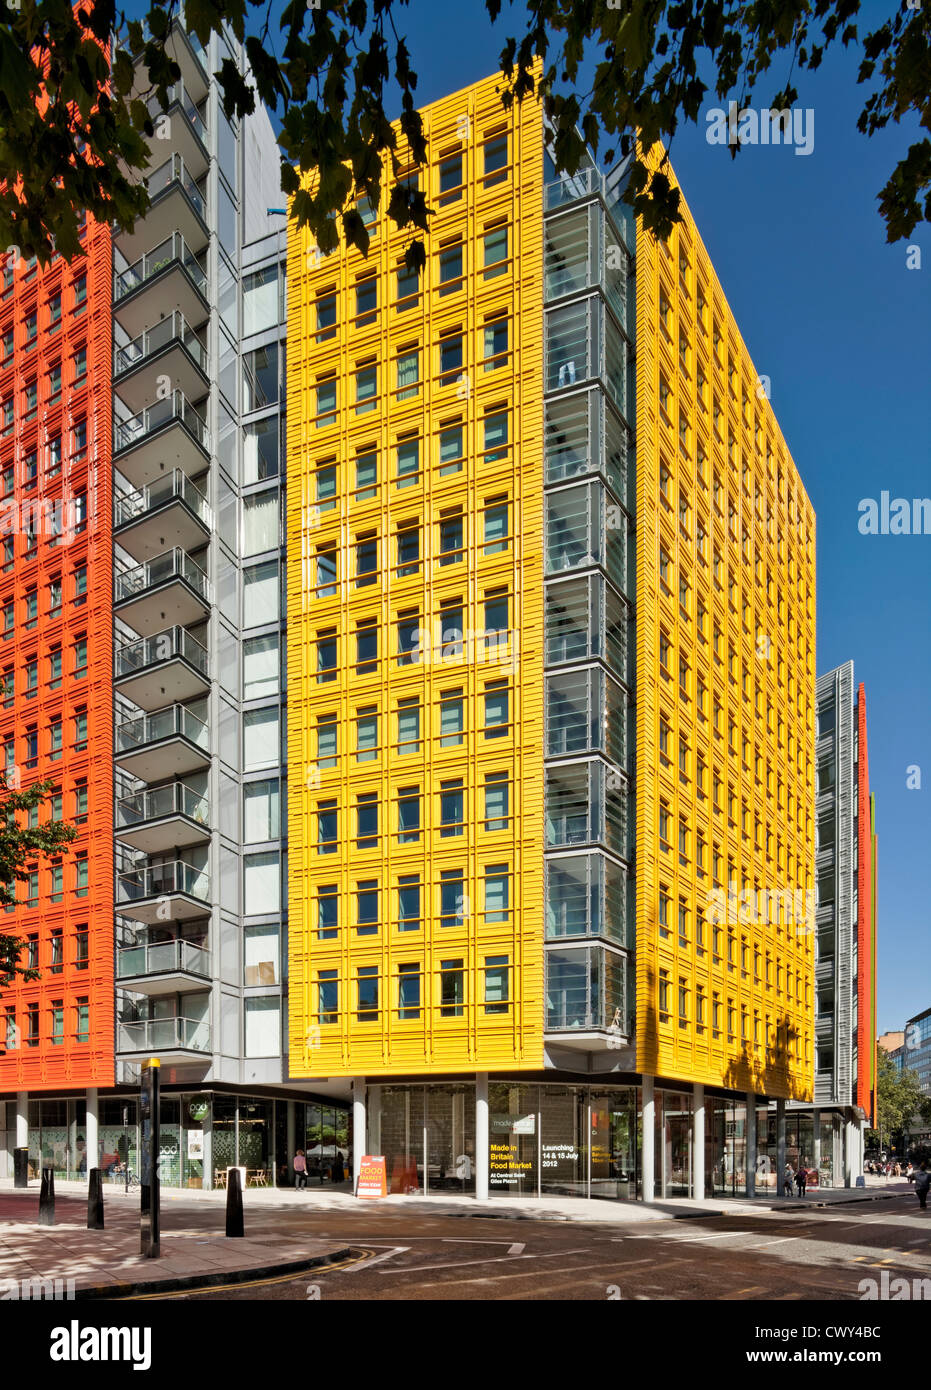 Central Saint Giles is a mixed-use development in central London